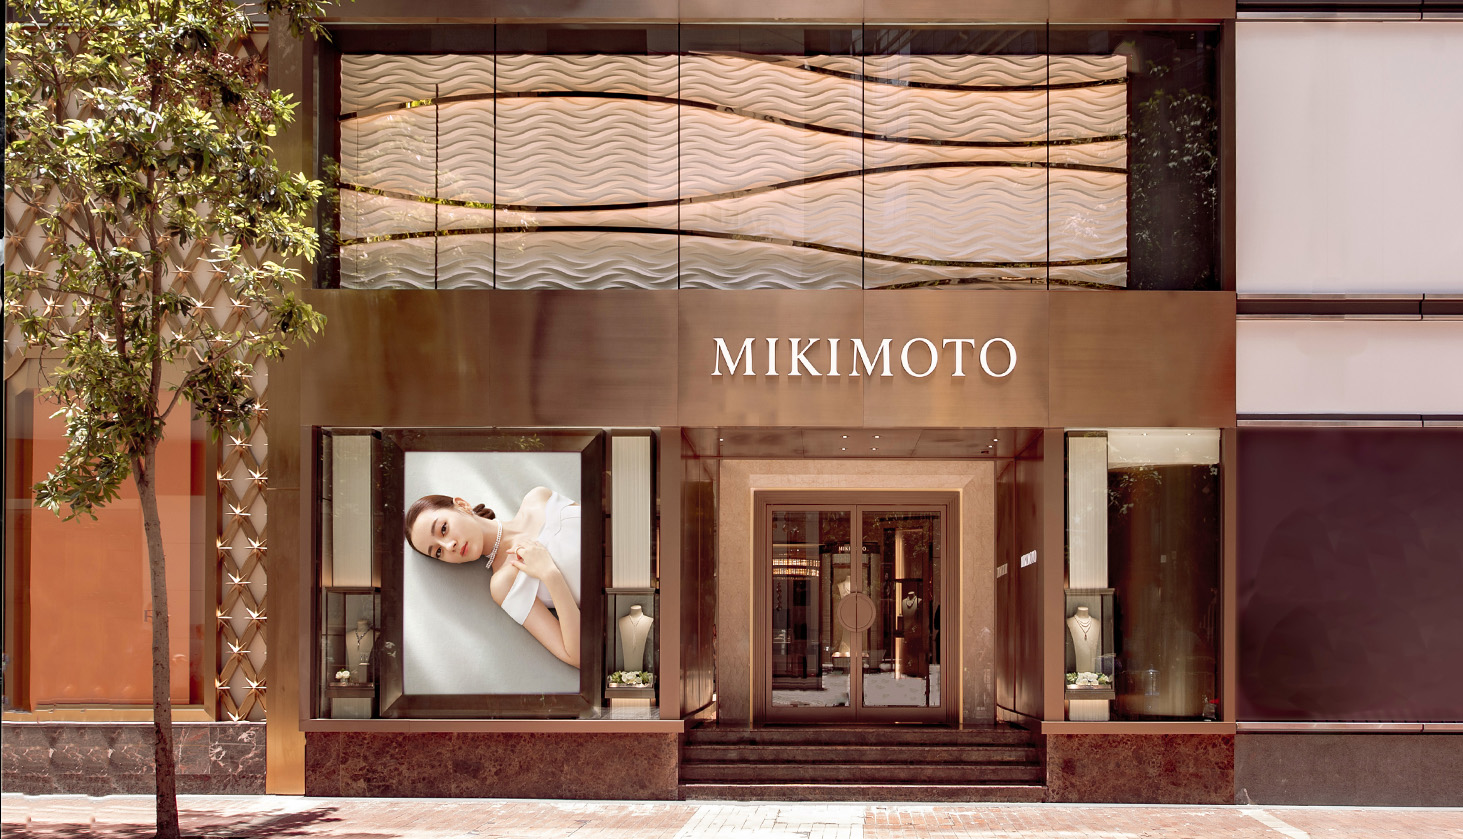 Mikimoto celebrates ocean-inspired opulence with new Lee Gardens flagship